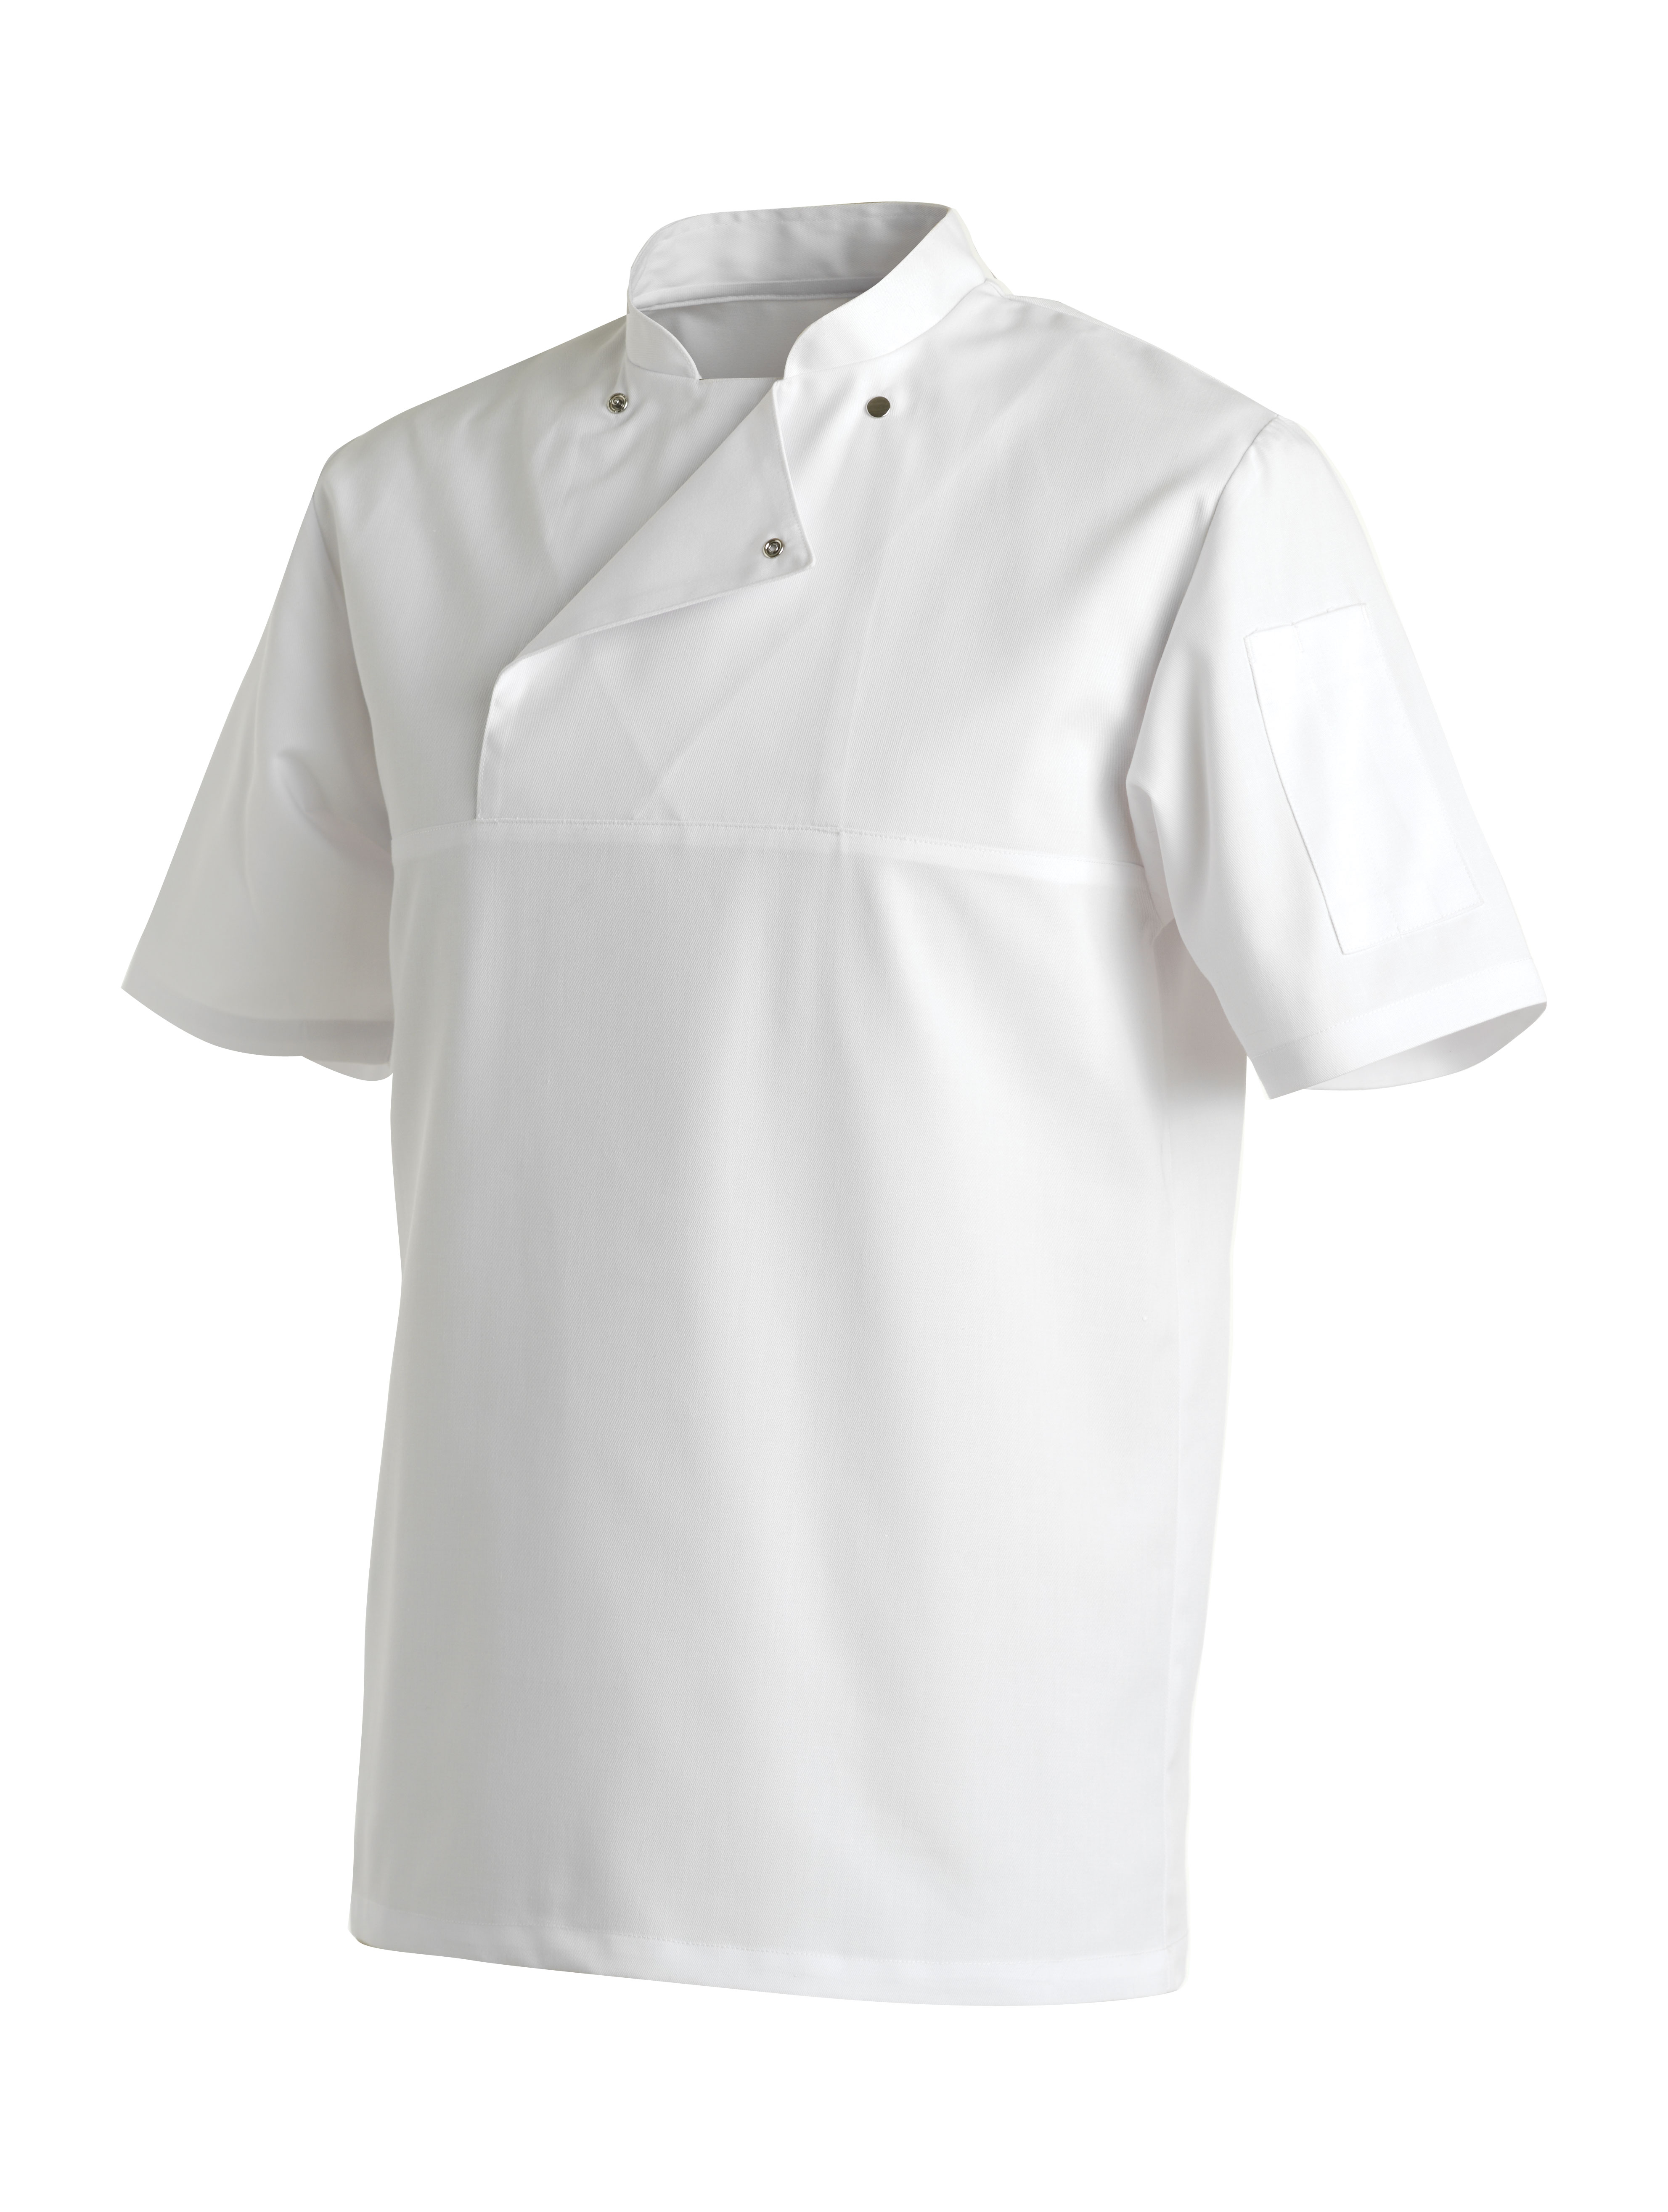 CHEFS UNIFORM JACKET UTILITY COAT SHORT - MEDIUM